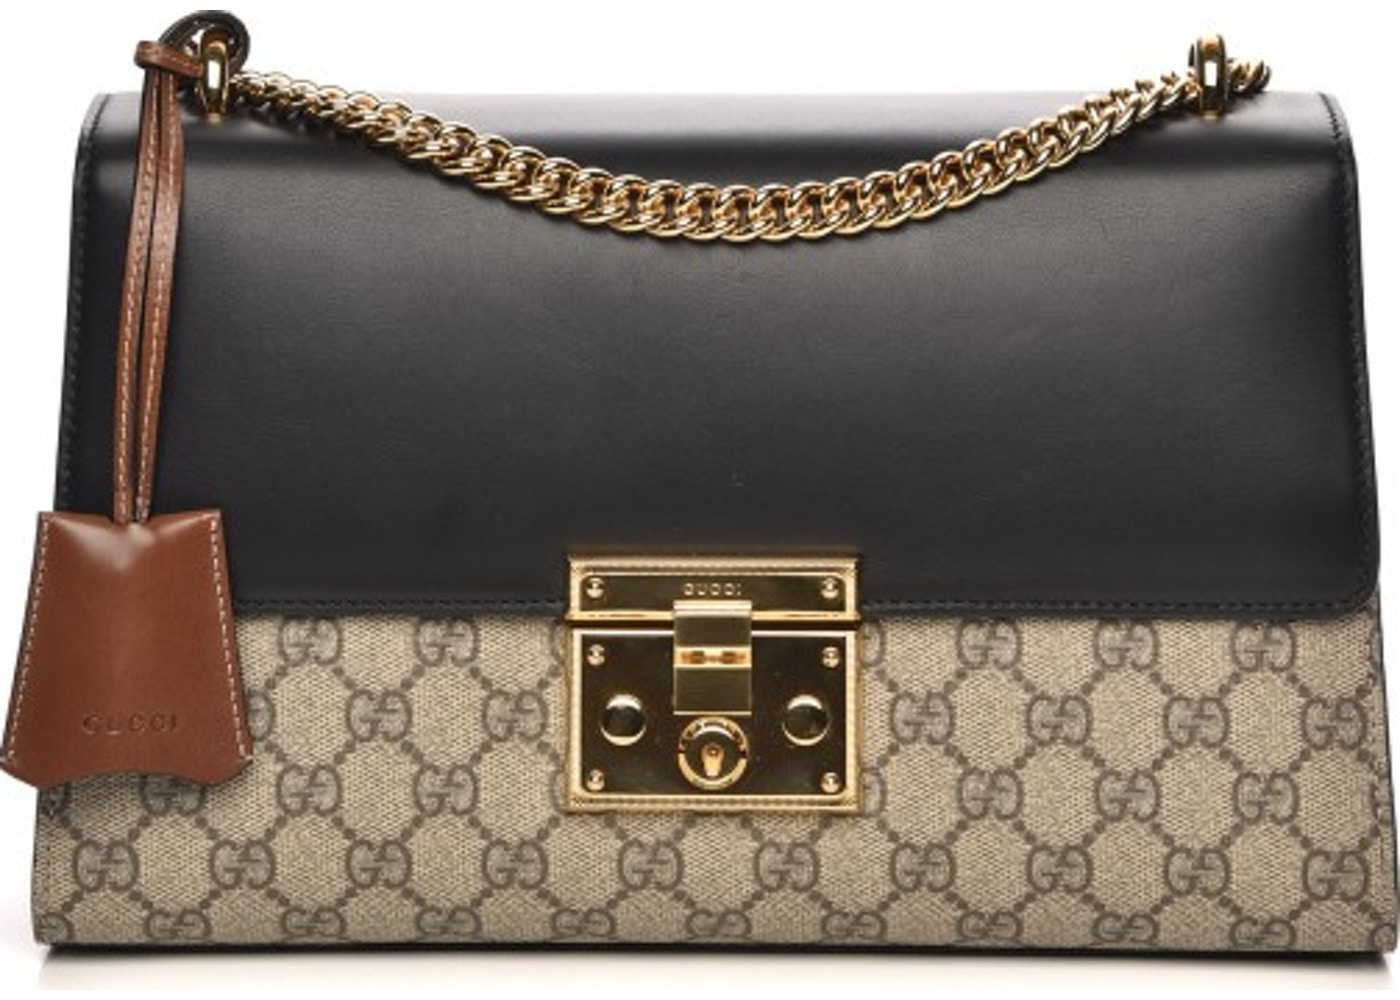 6cff53938 Gucci Padlock Shoulder GG Supreme Medium Beige/Black. GG Supreme Medium  Beige/Black